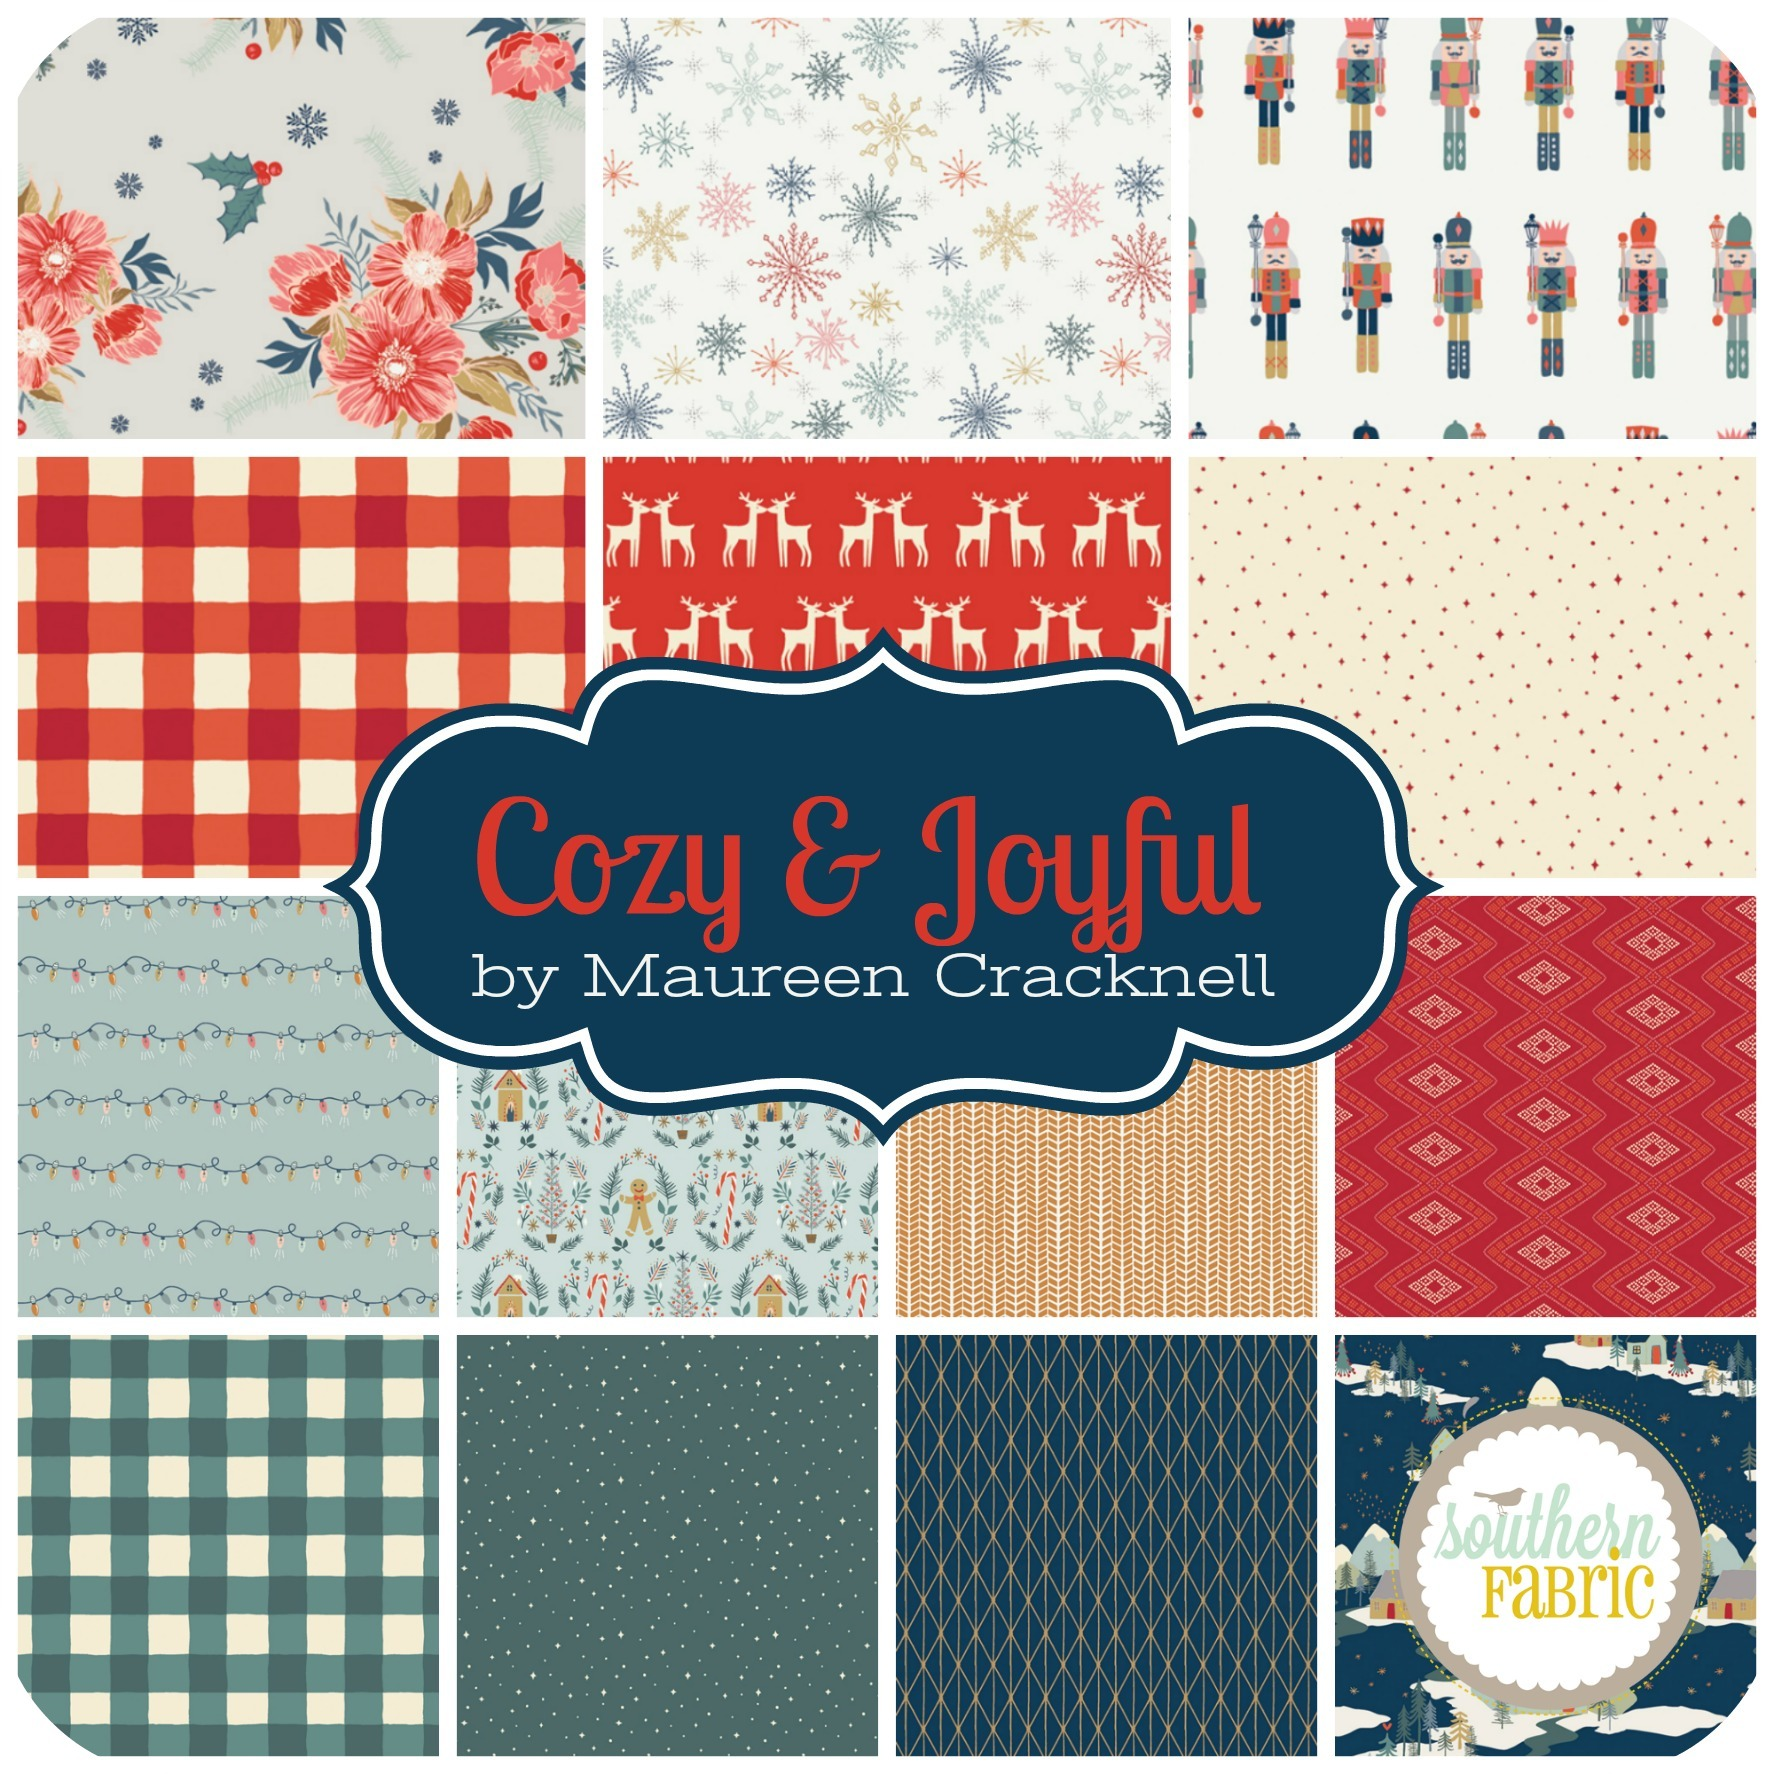 Cozy & Joyful by Maureen Cracknell